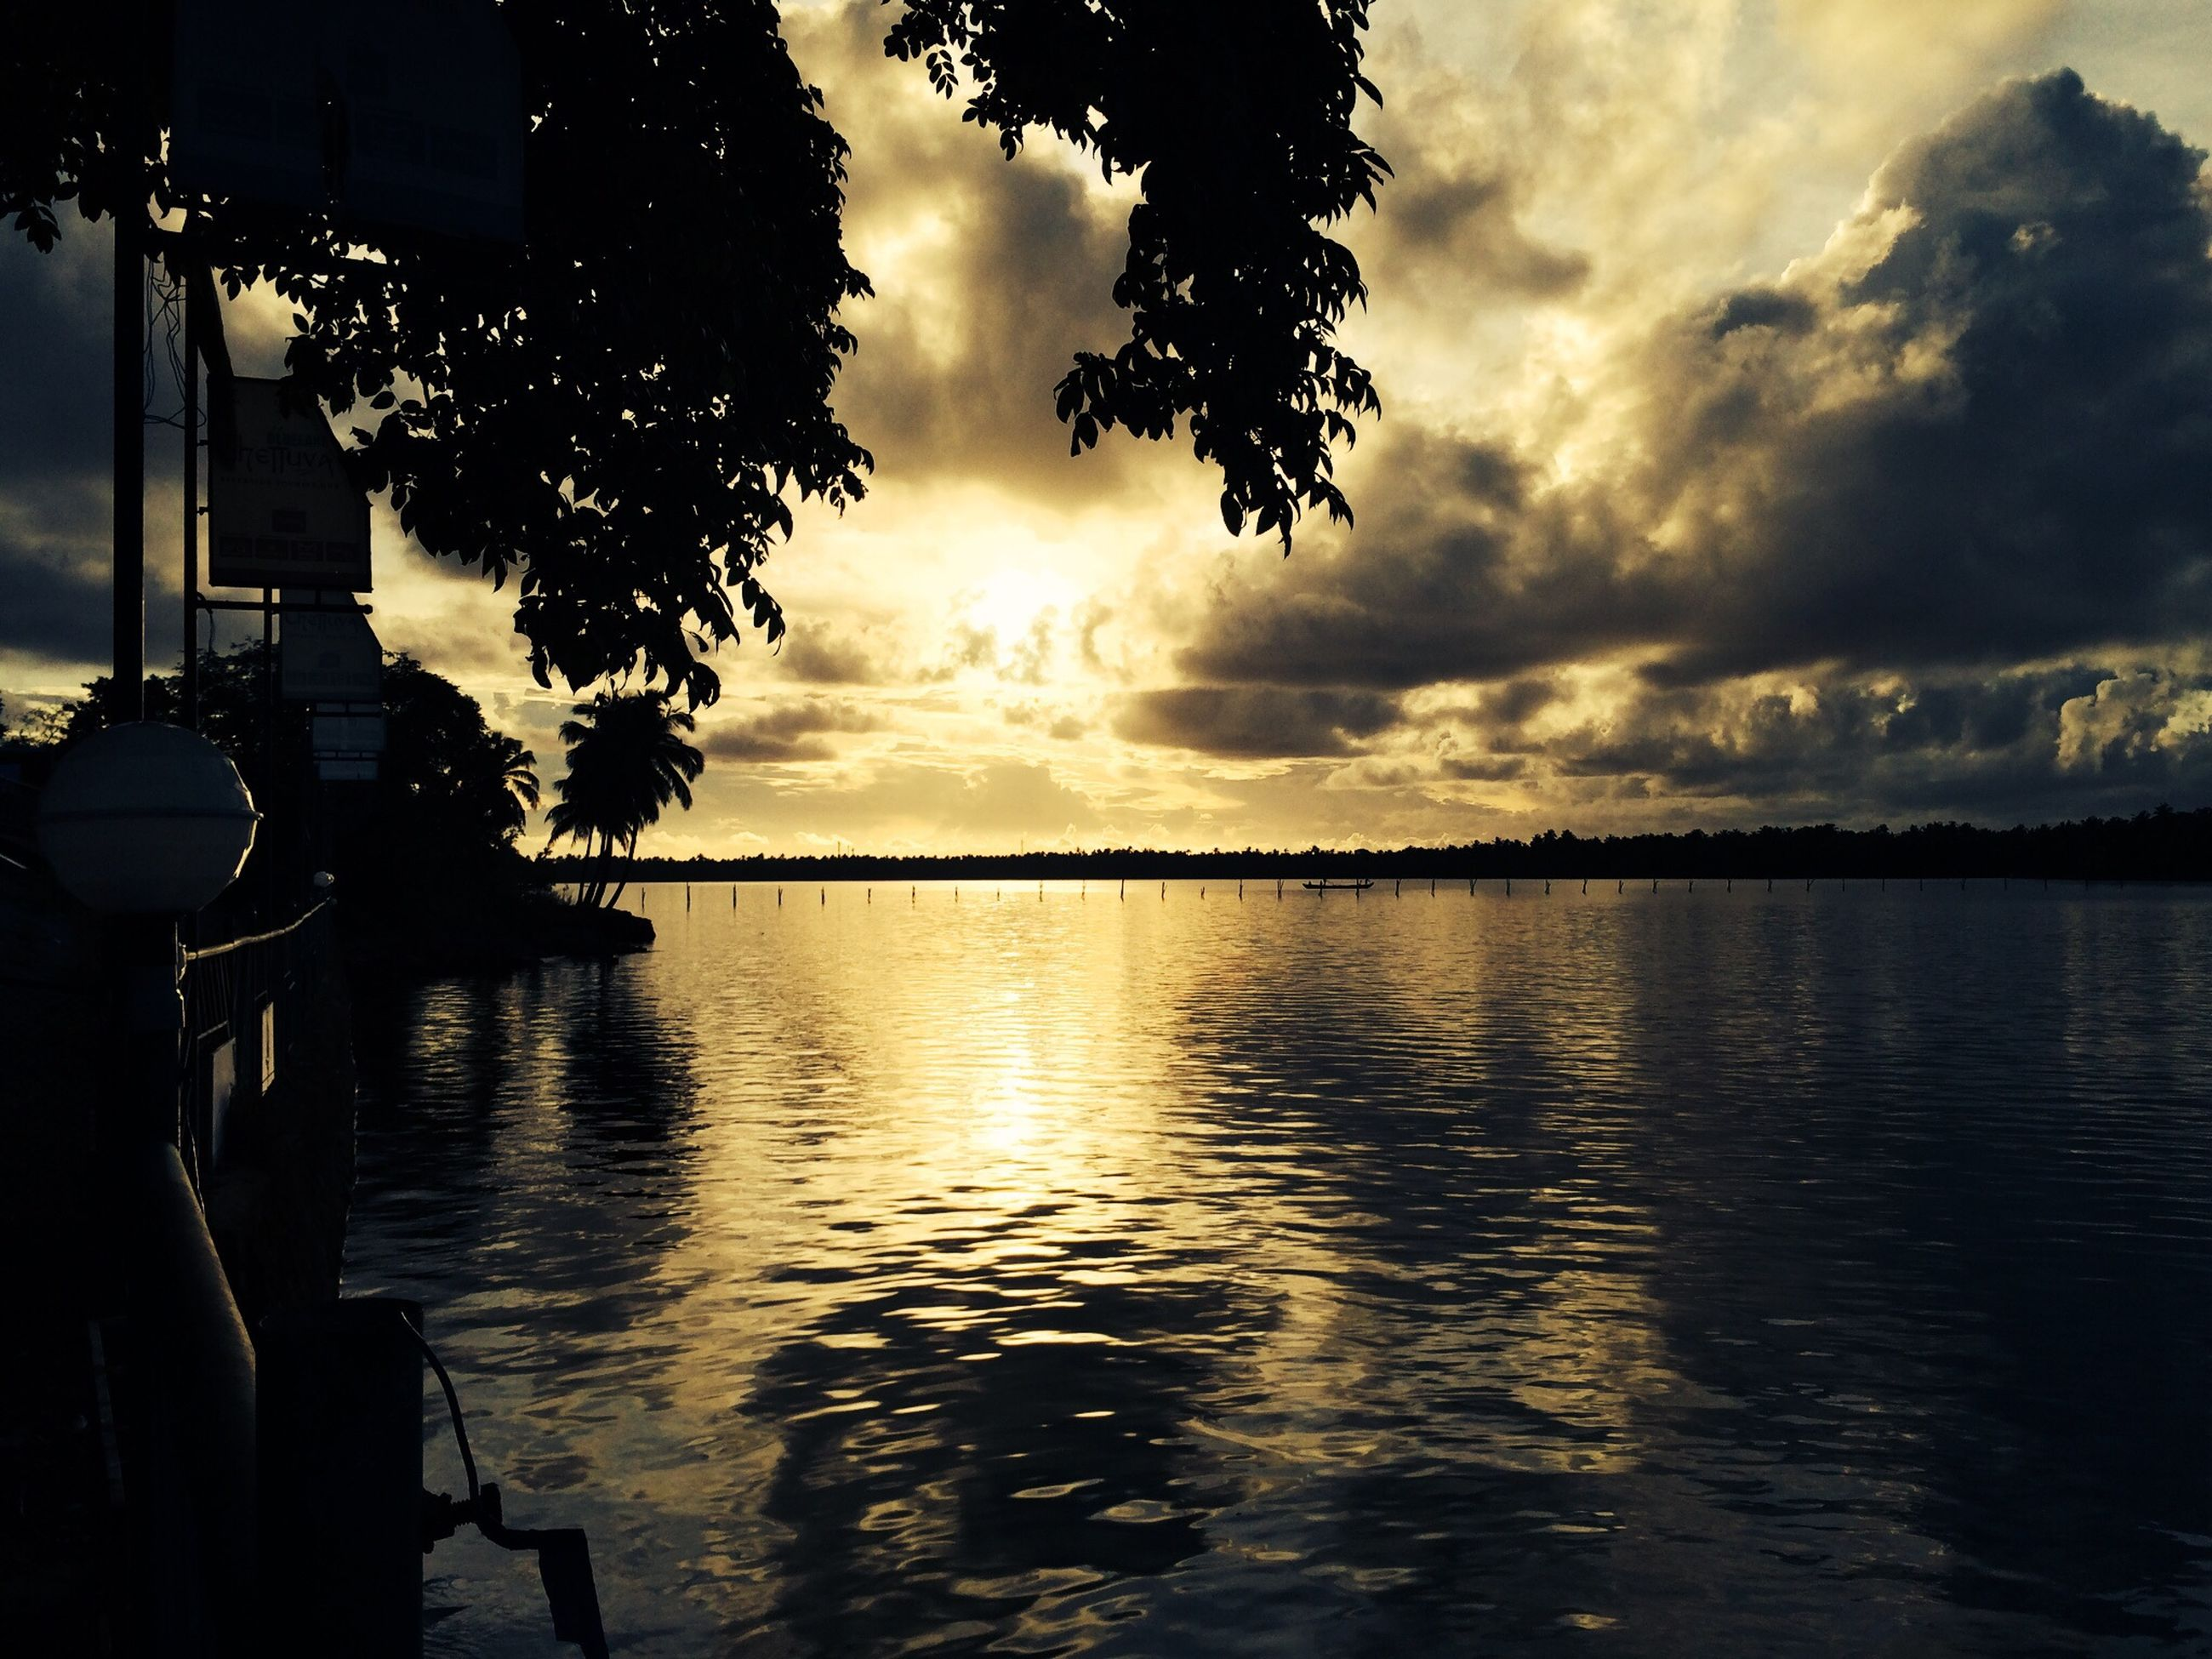 sunset, water, sky, silhouette, cloud - sky, scenics, reflection, tranquil scene, sea, tranquility, waterfront, beauty in nature, idyllic, cloudy, nature, cloud, sun, dramatic sky, lake, rippled